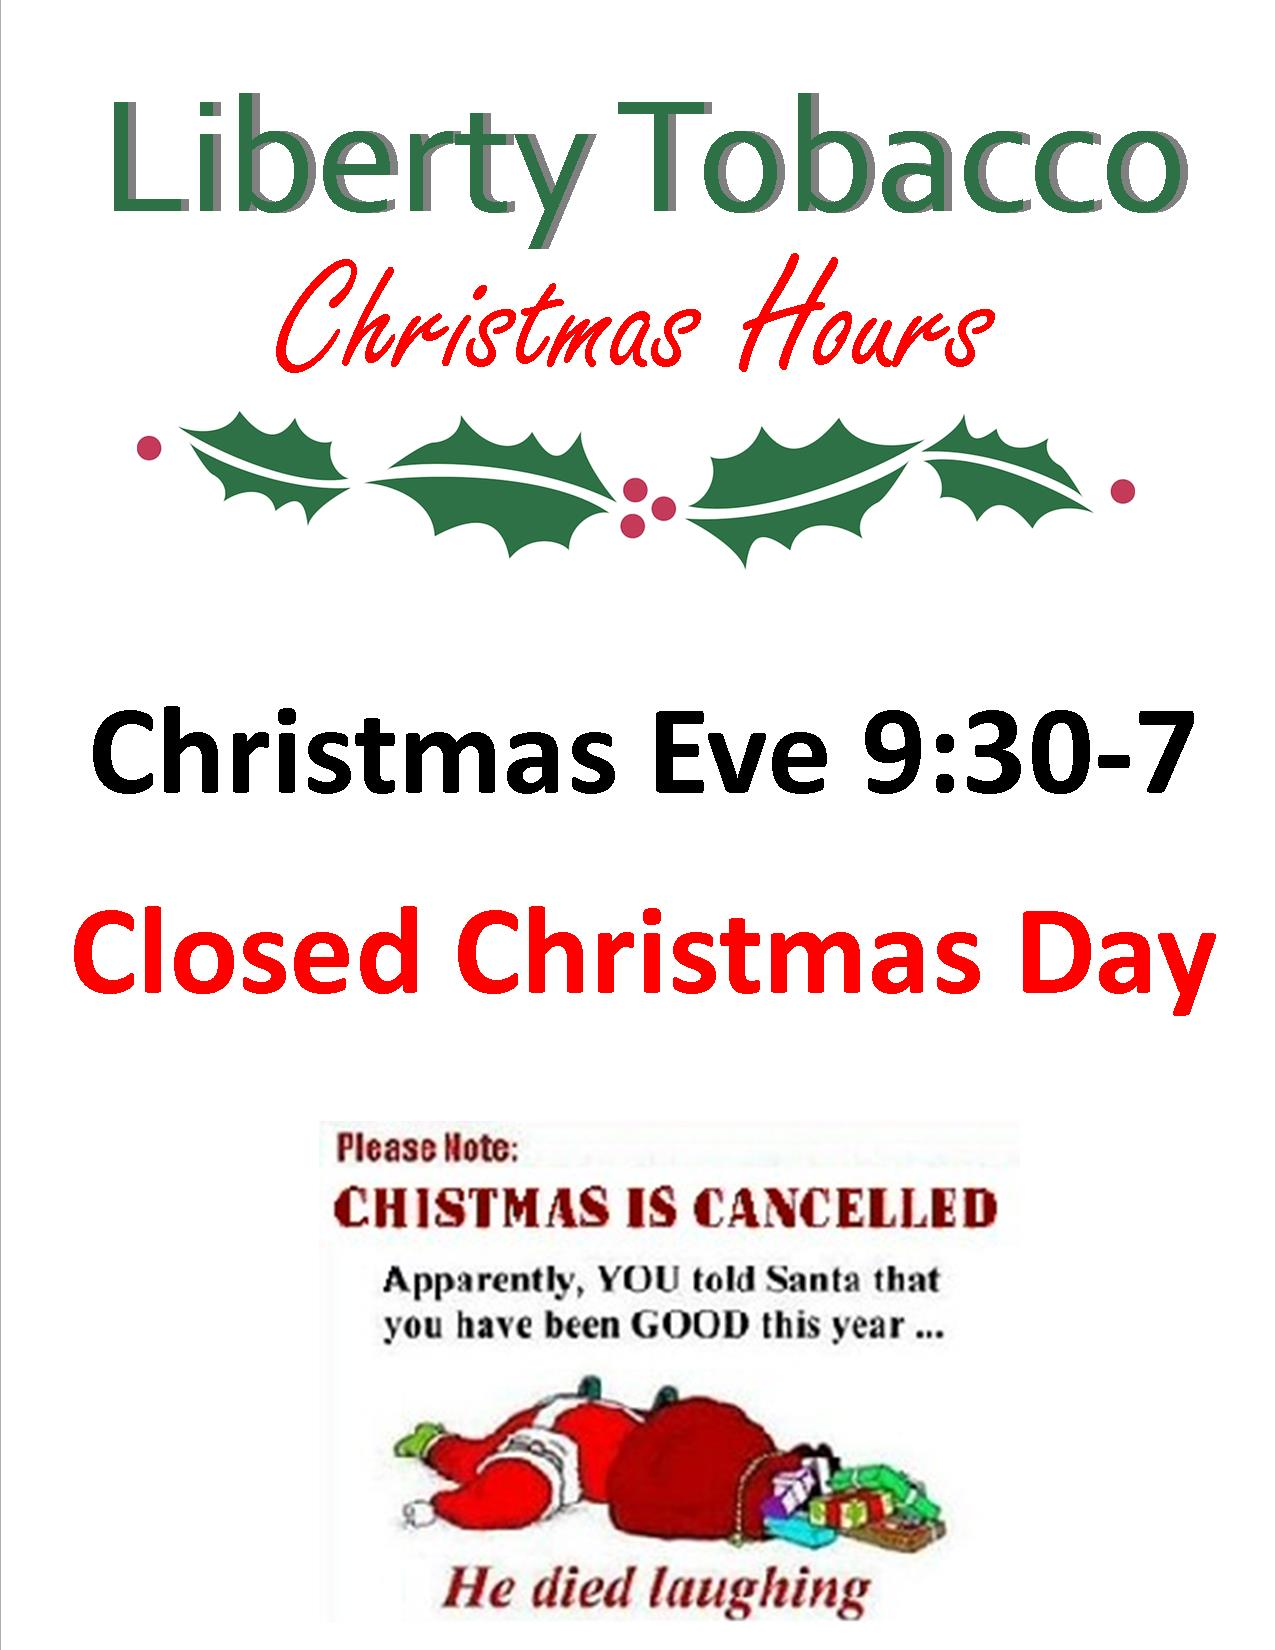 Liberty Tobacco Christmas Eve & Christmas Hours